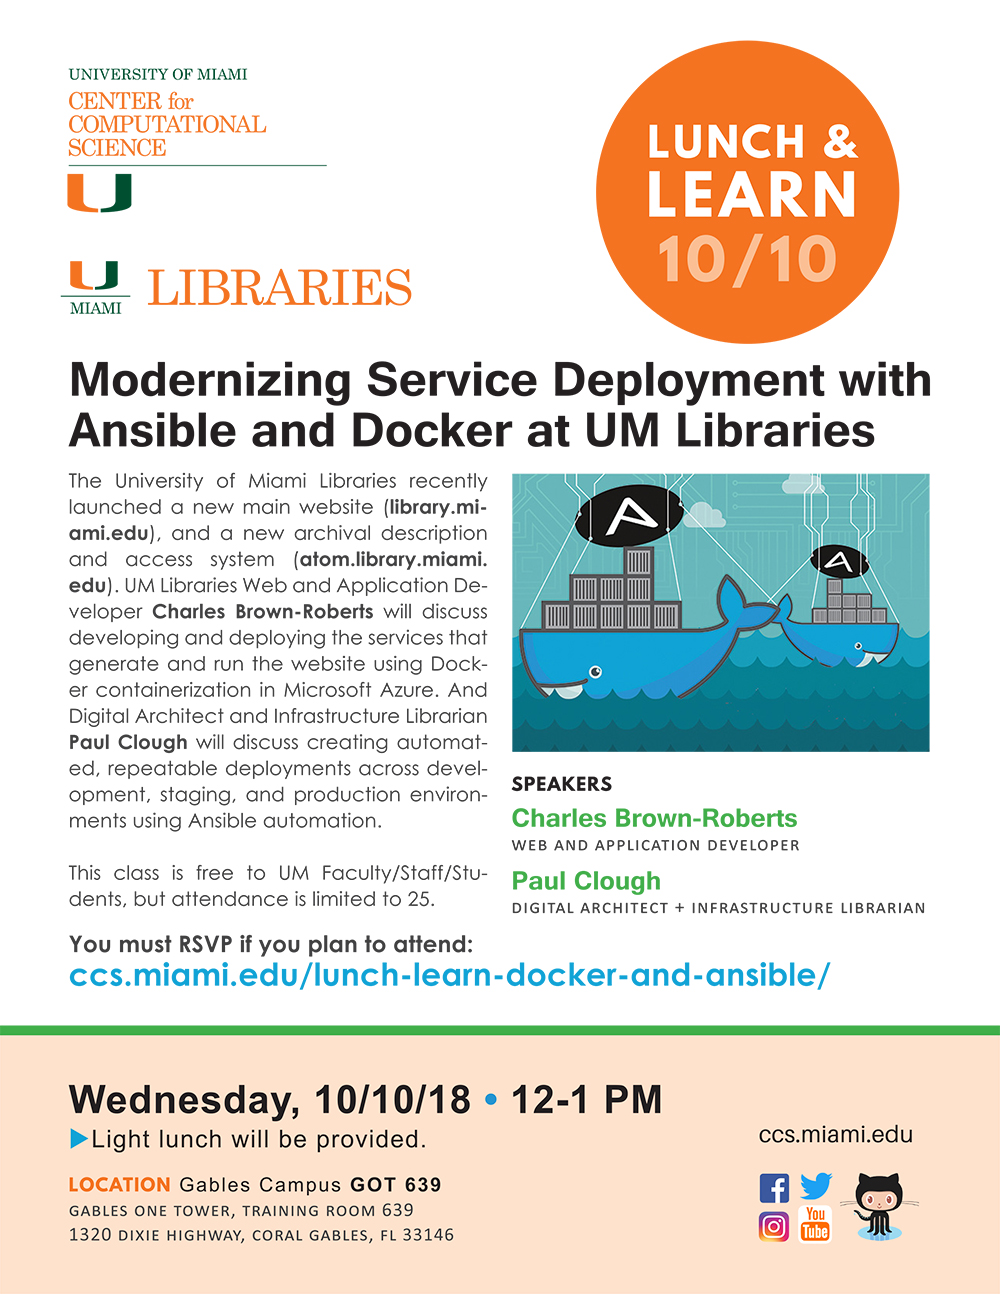 """University of Miami Center for Computational Science Lunch and Learn """"Modernizing Service Deployment with Ansible and Docker at UM Libraries"""" Flyer"""